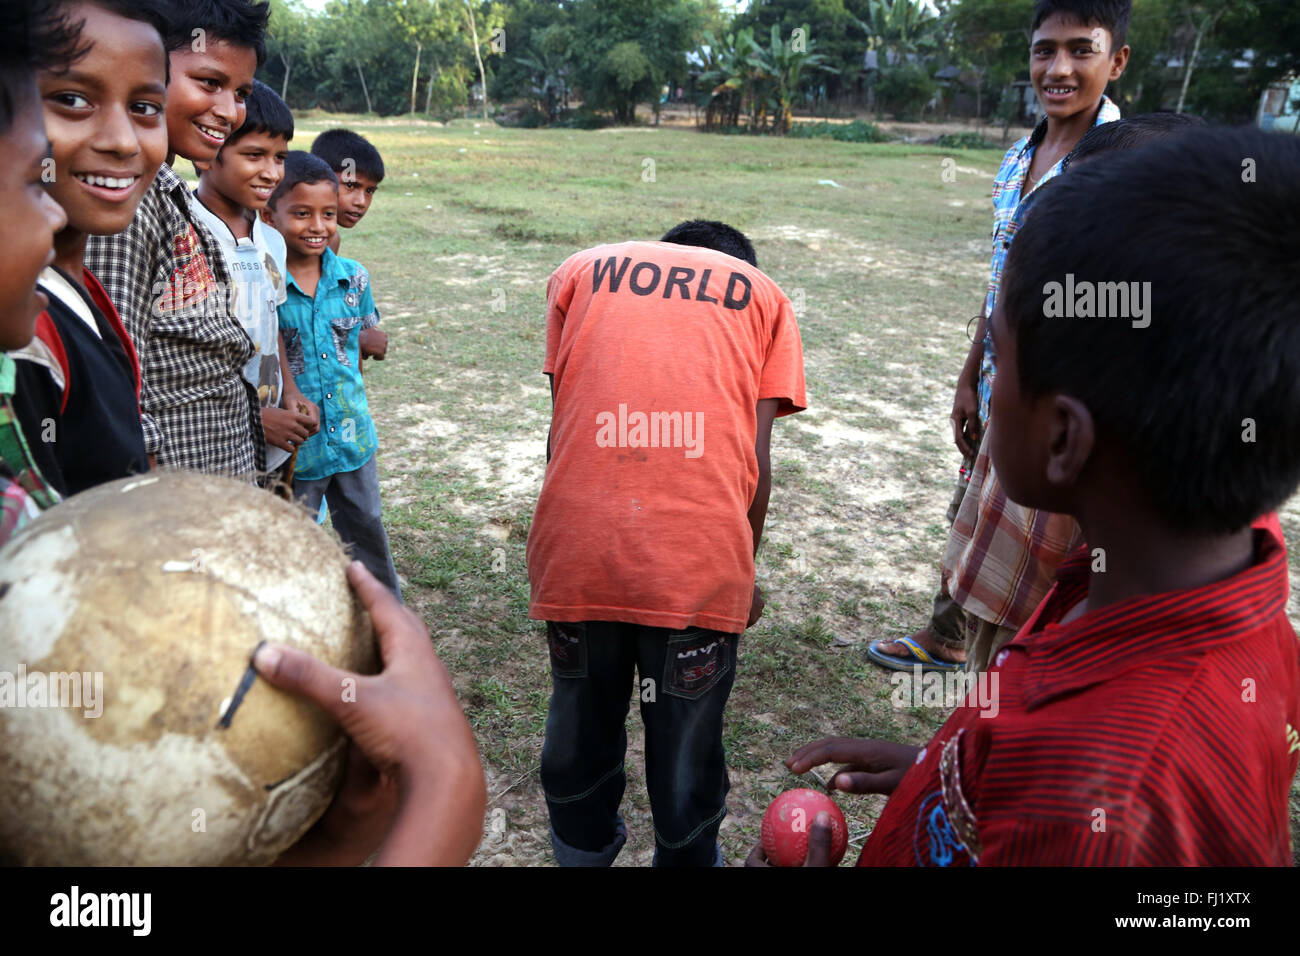 Happy smiling kids play football with 'WORLD' t shirt in Sreemangal , Bangladesh - Stock Image